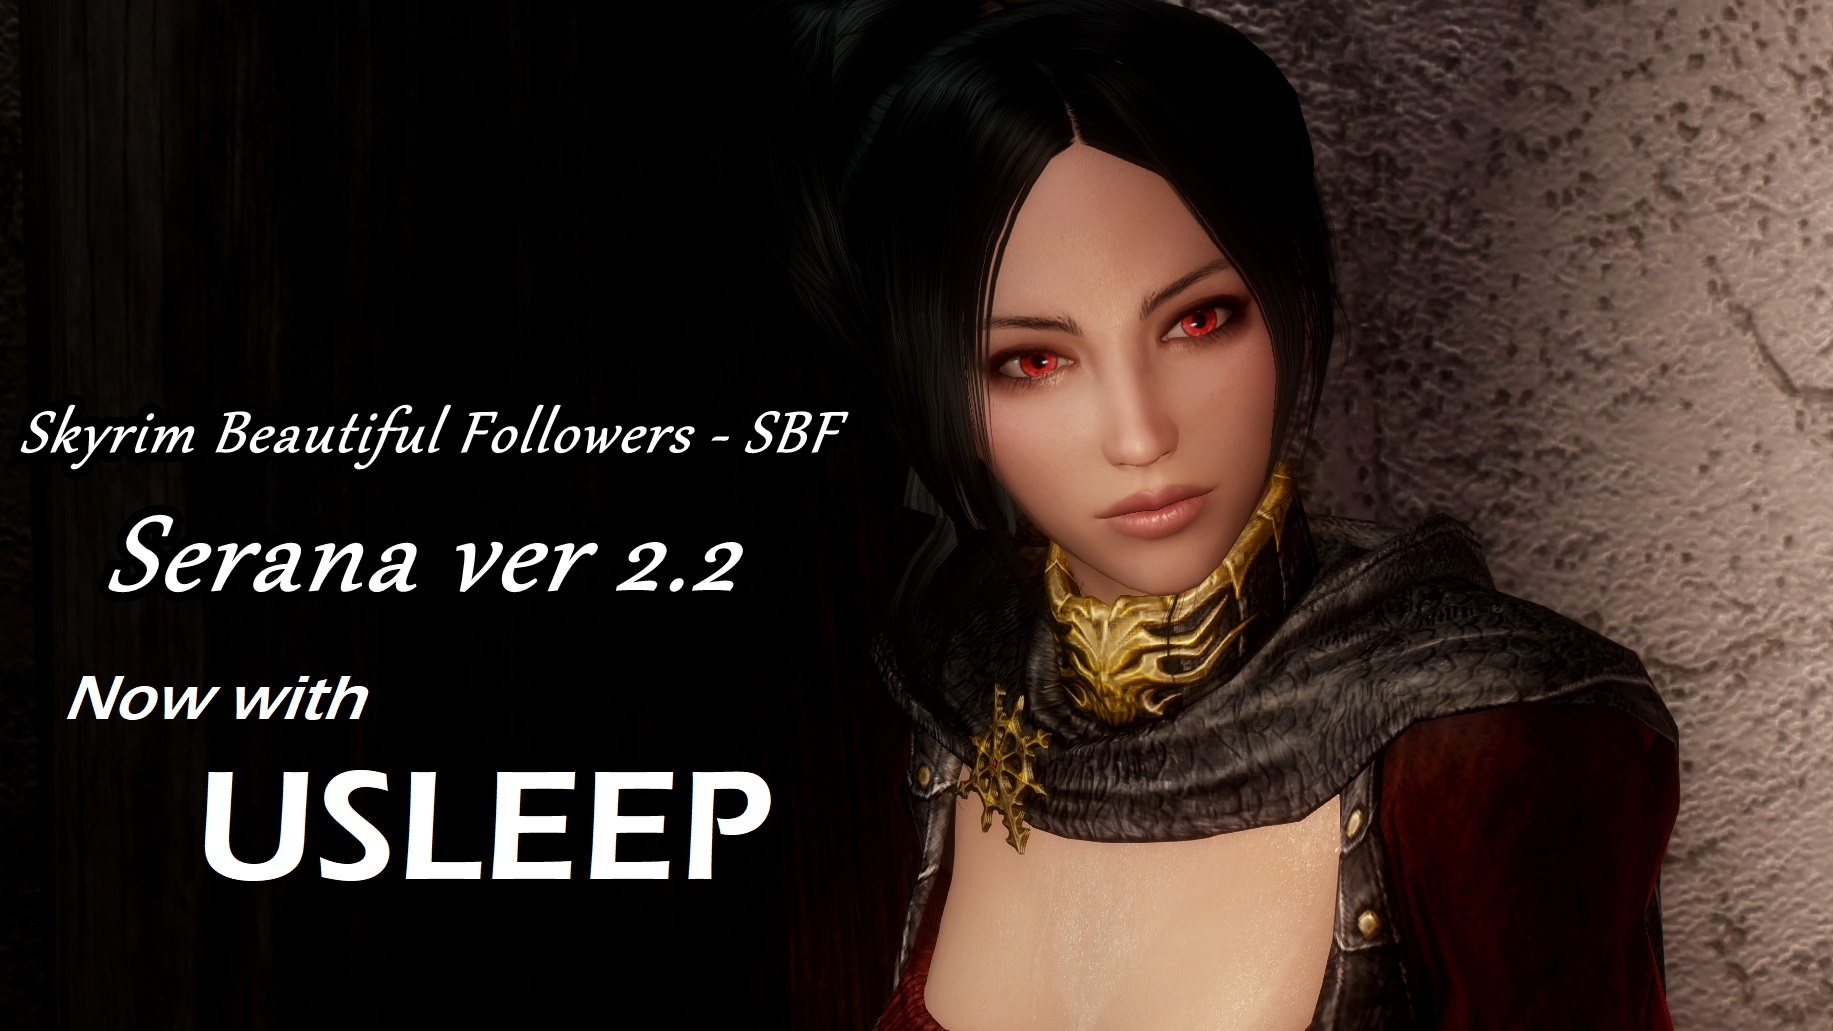 Skyrim Beautiful Followers - SBF - USLEEP Patch at Skyrim Nexus